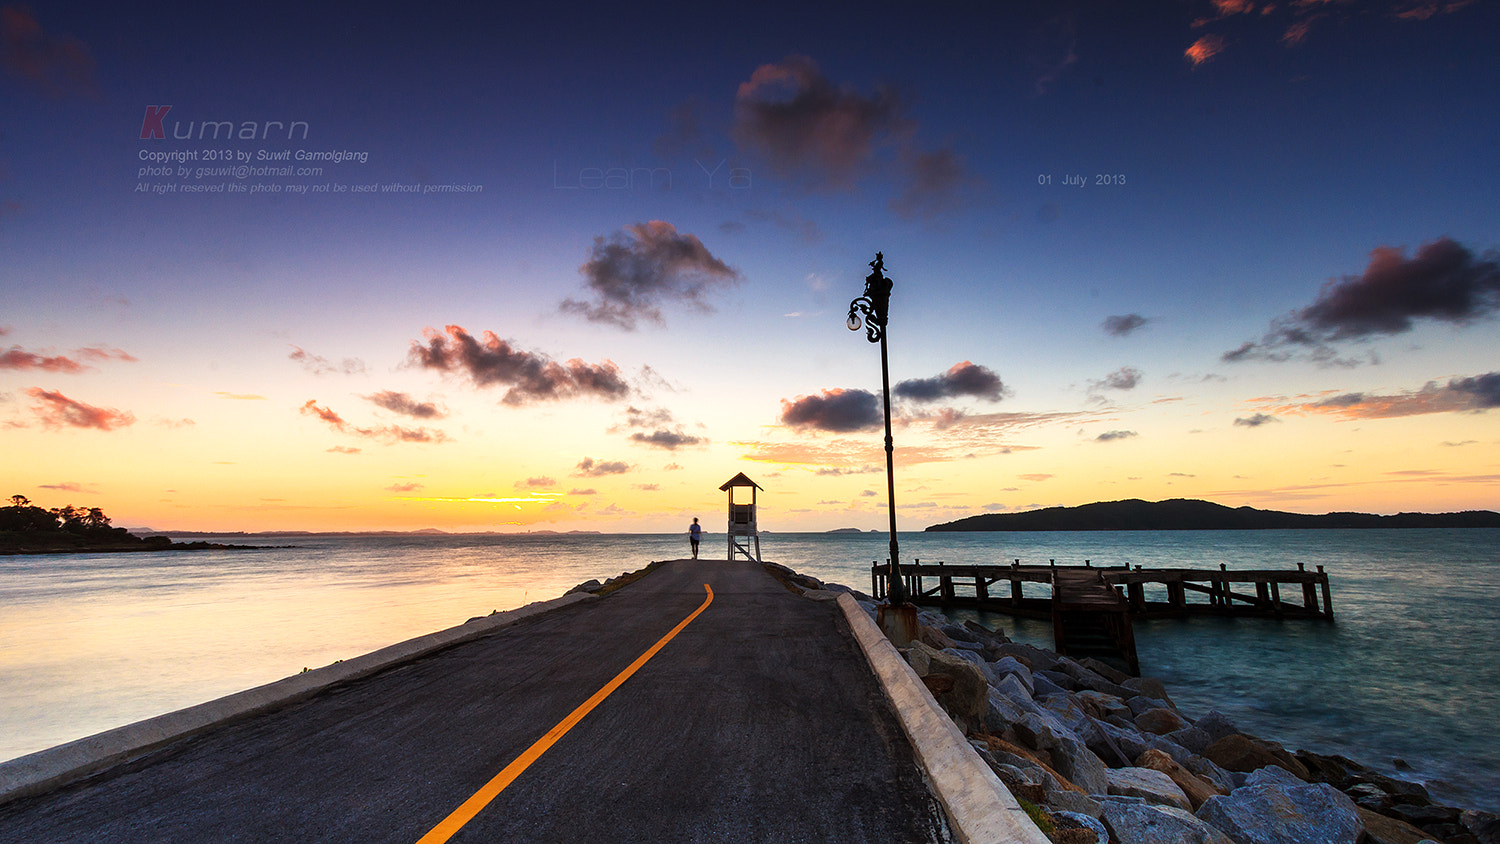 Photograph sunrise on end road by Suwit Gamolglang on 500px